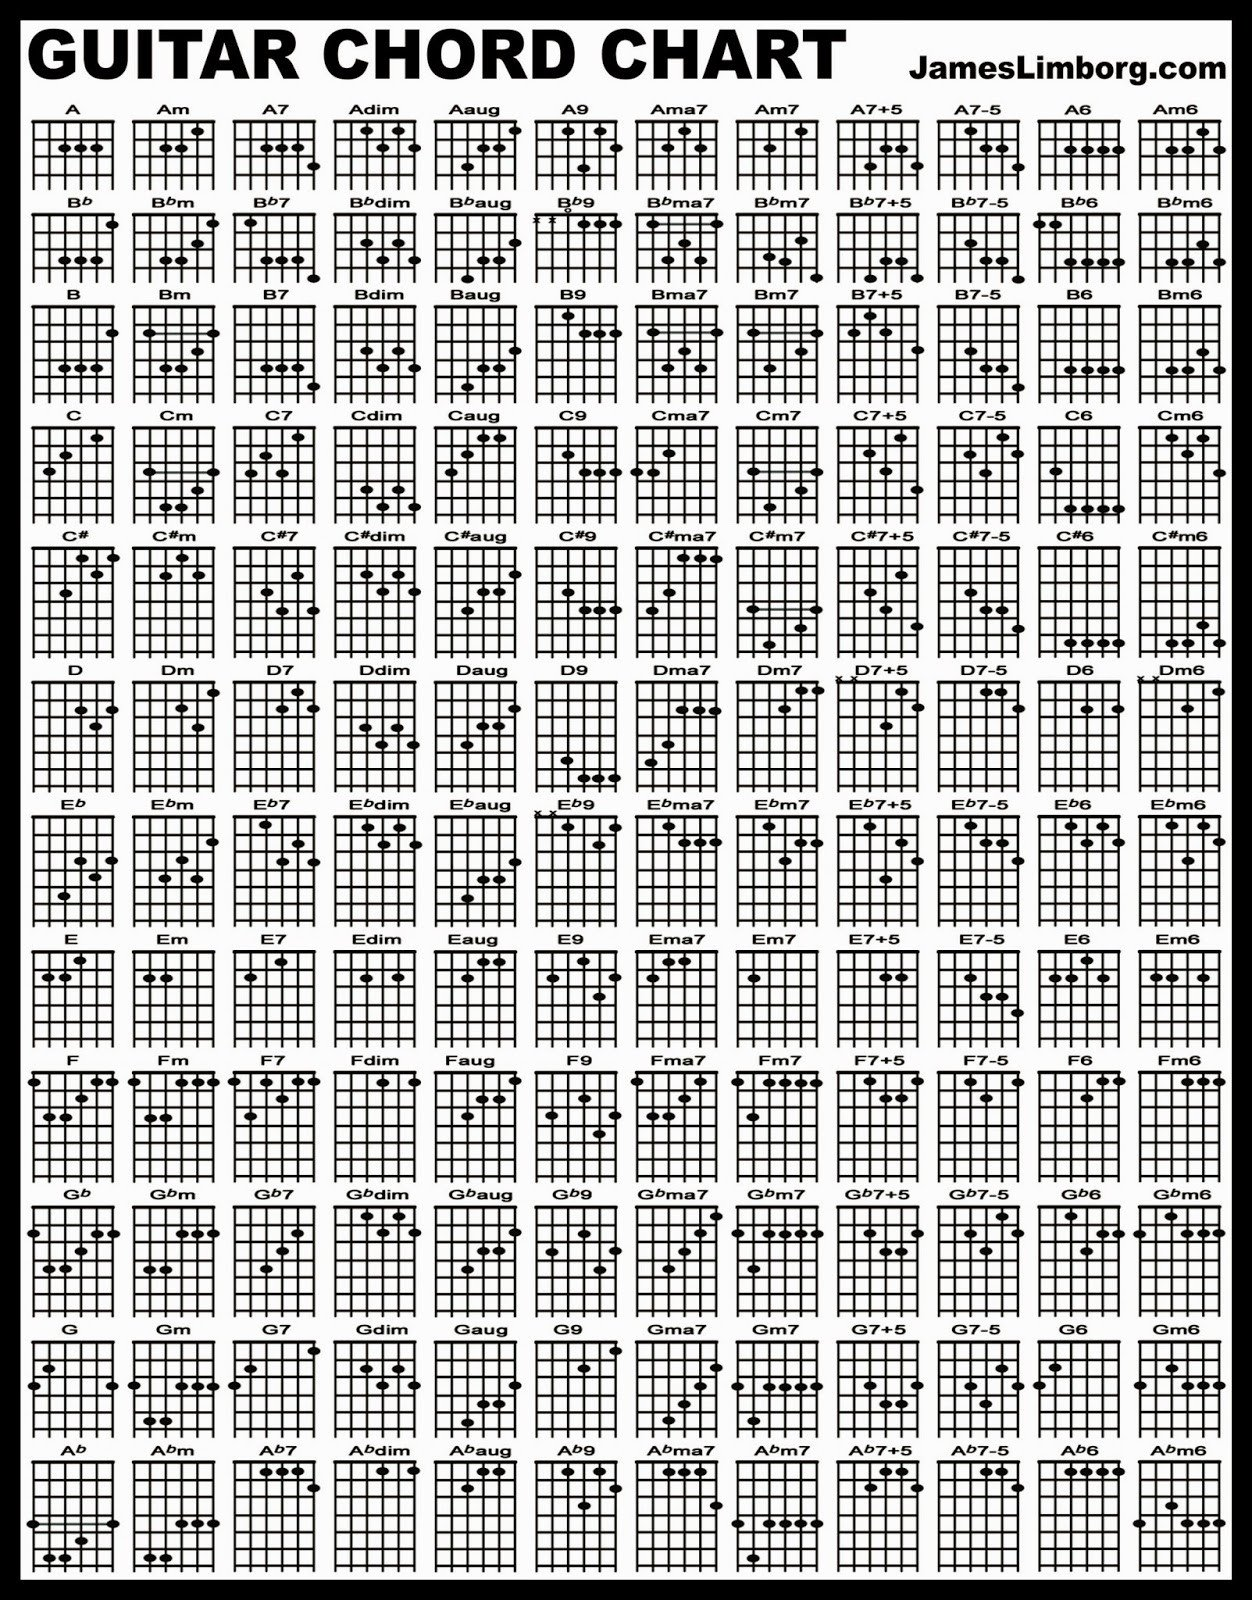 Complete Guitar Chord Chart About Guitar